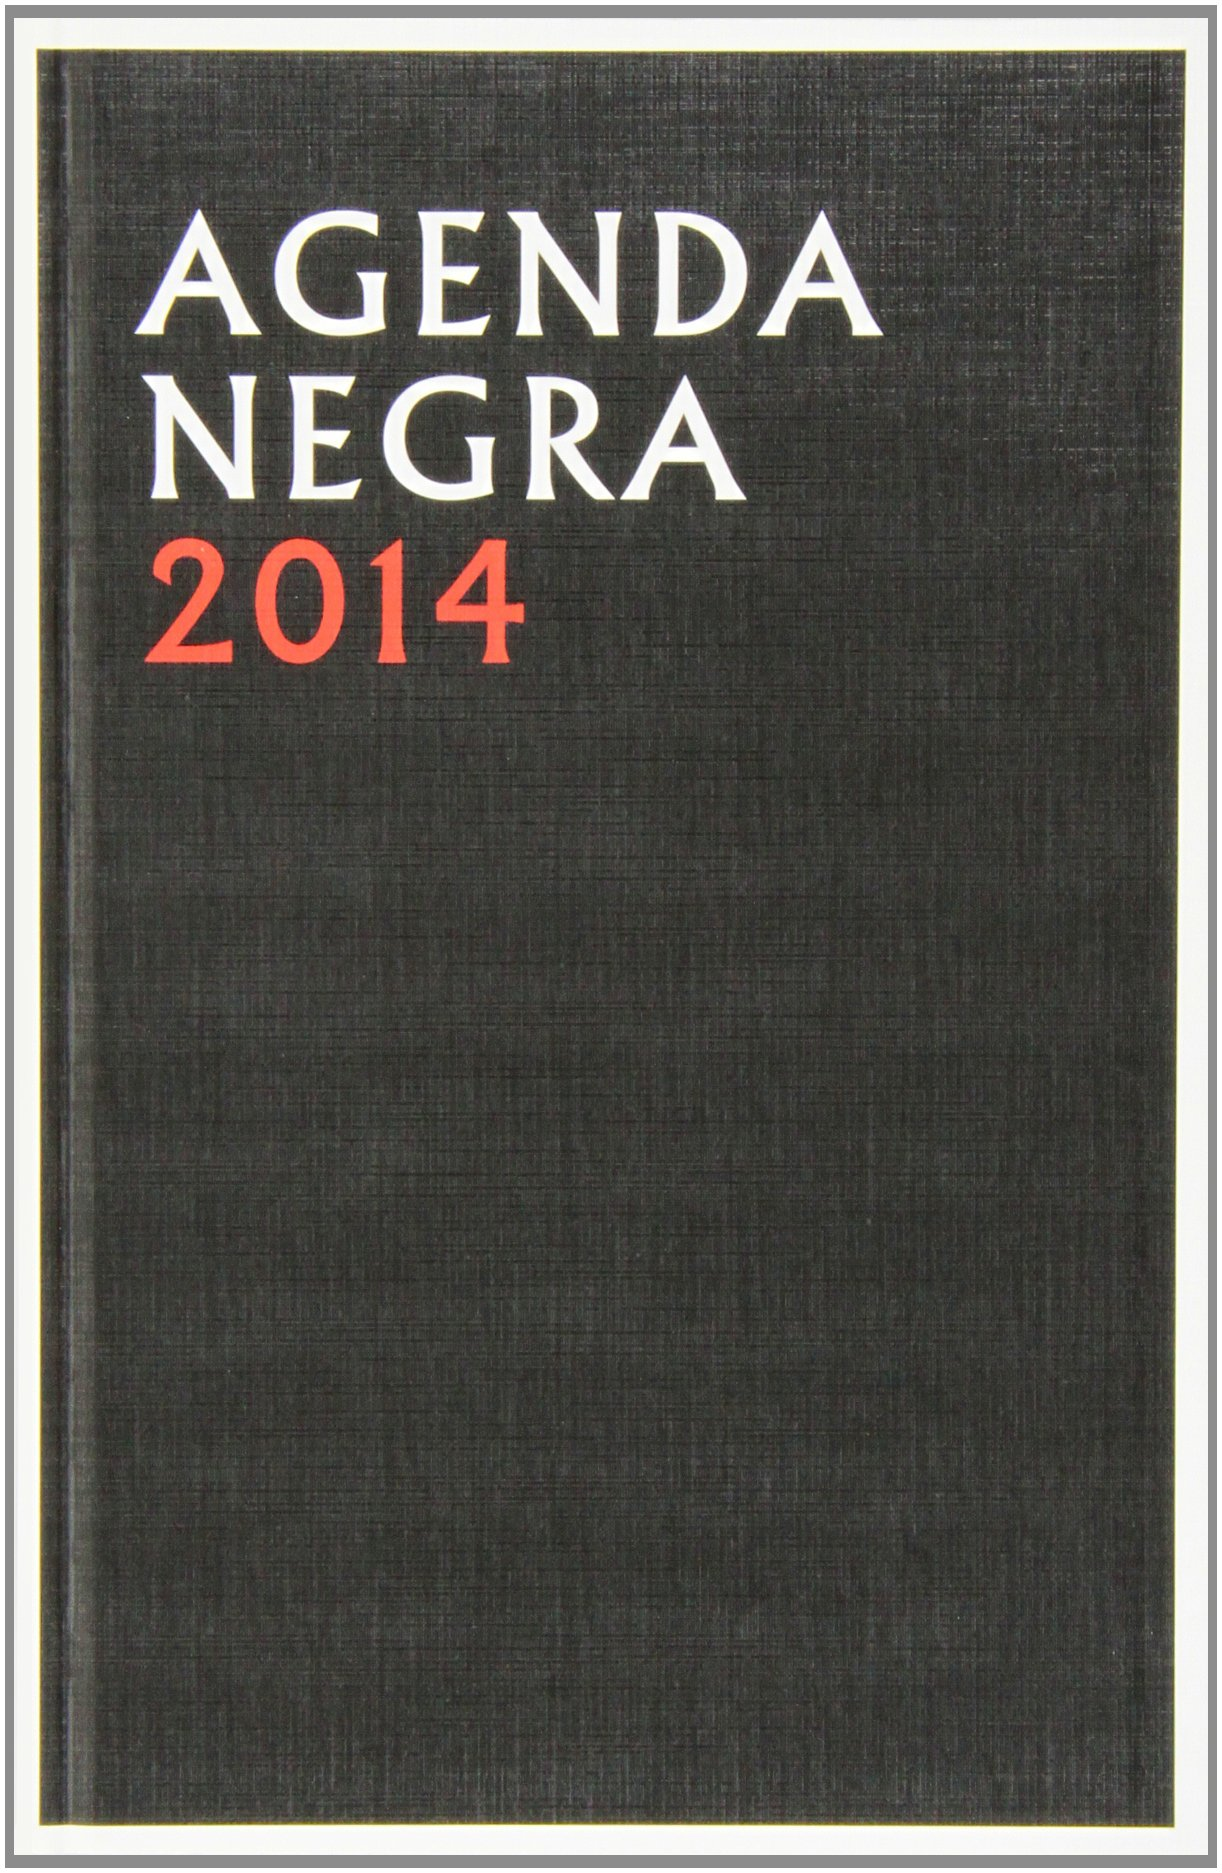 Agenda 2014: negra: Navona Editorial: 9788492840748: Amazon ...